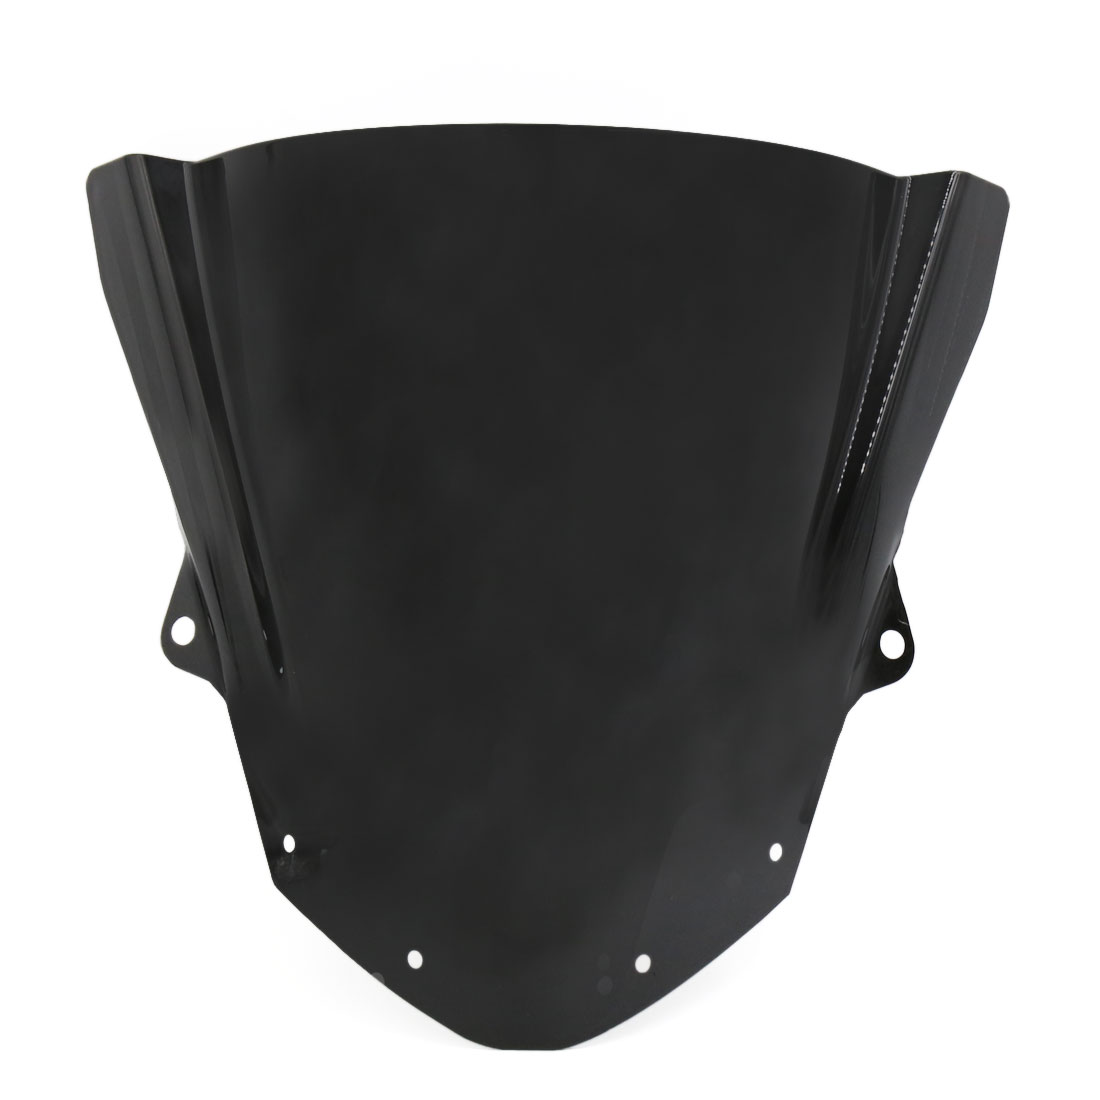 Black ABS Plastic Scooter Motorcycle Windshield for ZX6R 09-14 ZX10R 08-10